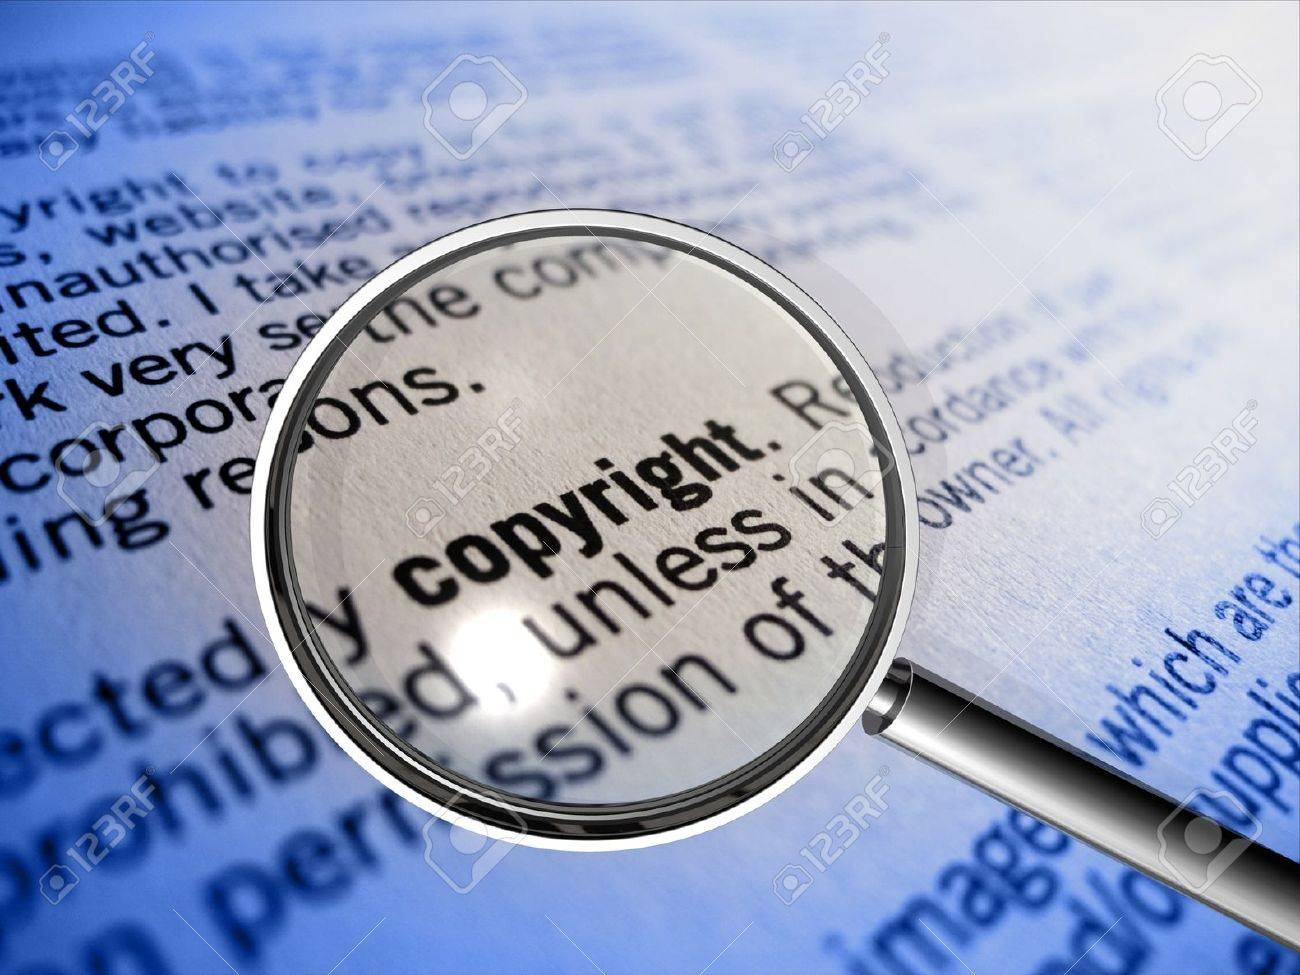 copyright in focus Stock Photo - 12638086